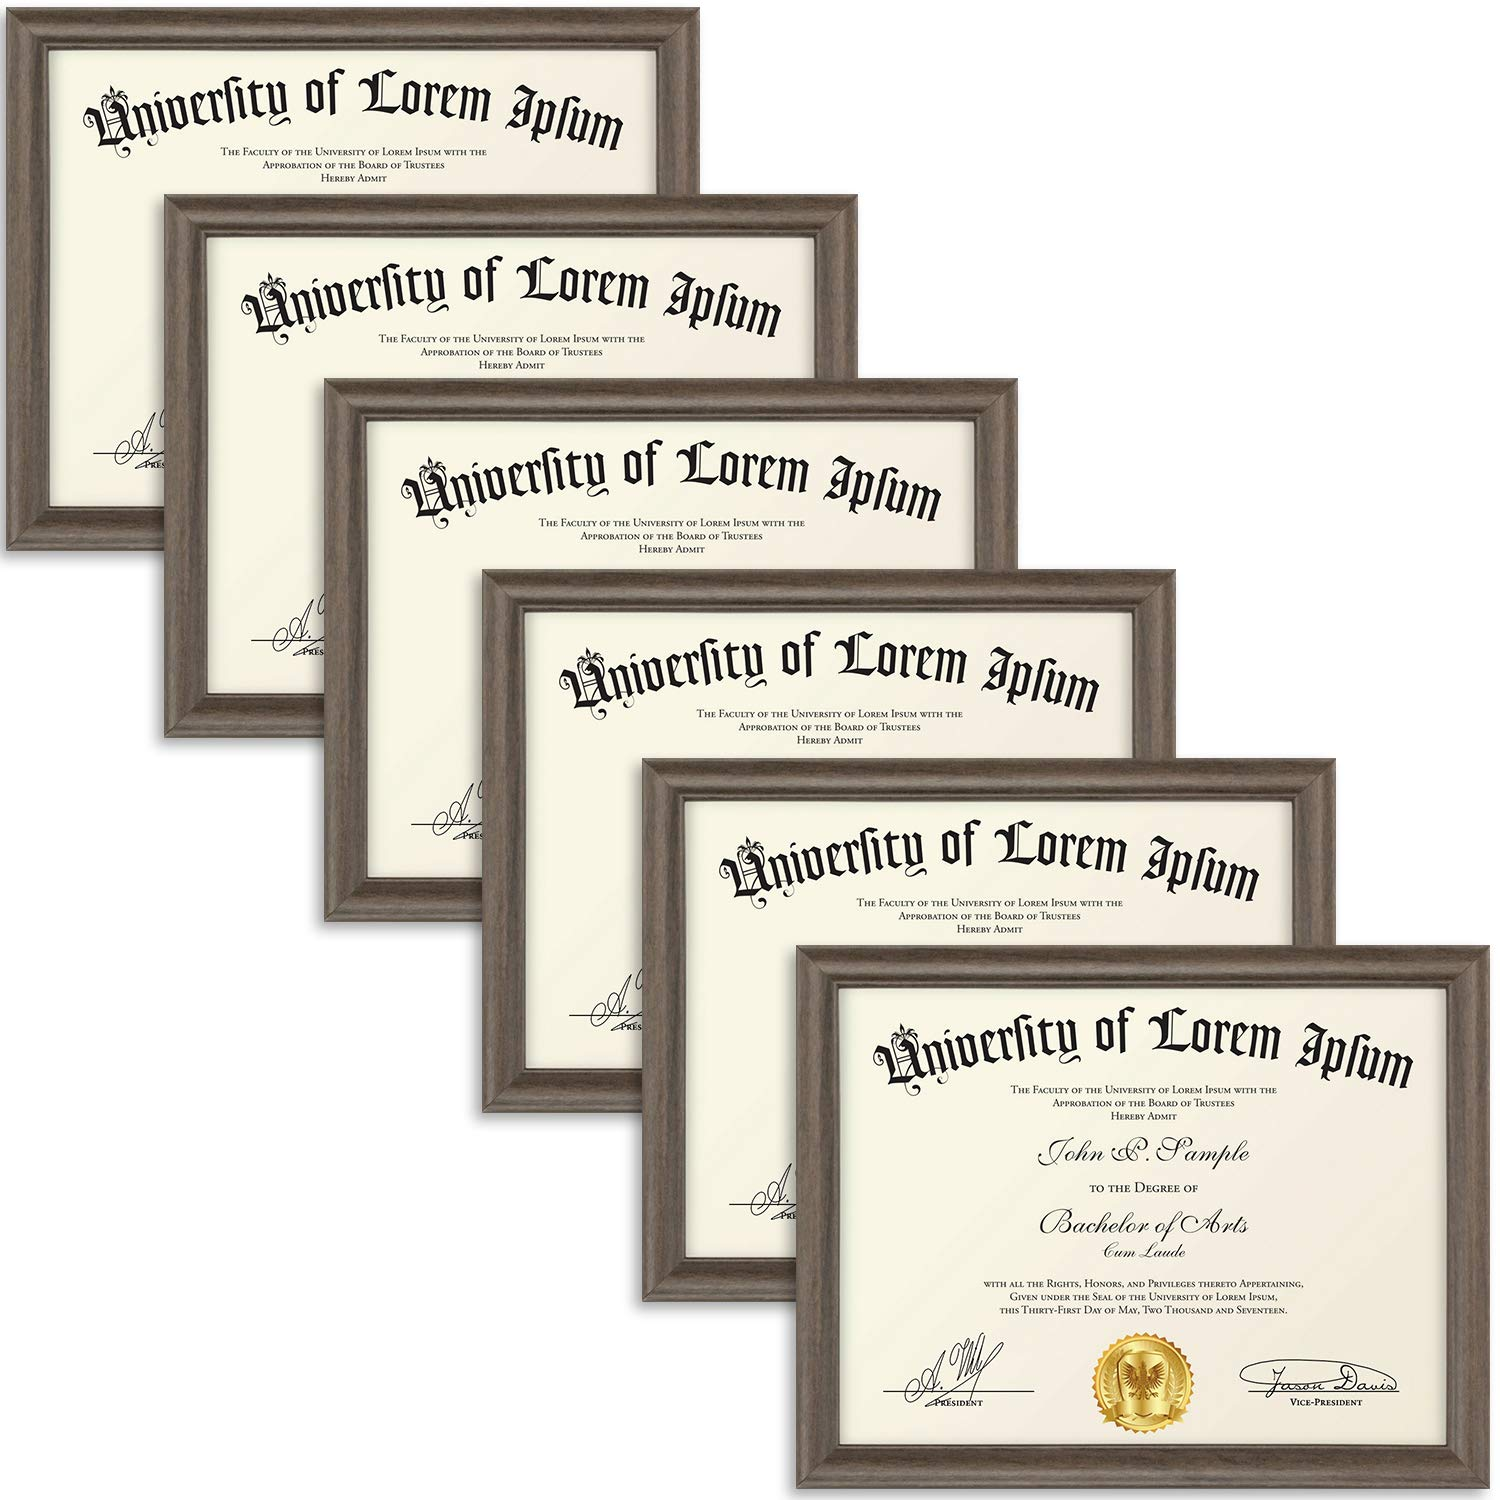 Icona Bay 8.5x11 Diploma Frame (6 Pack, Hickory Brown), Certificate Frame, Document Frame, Composite Wood Frame for Walls or Tables, Set of 6 Lakeland Collection by Icona Bay